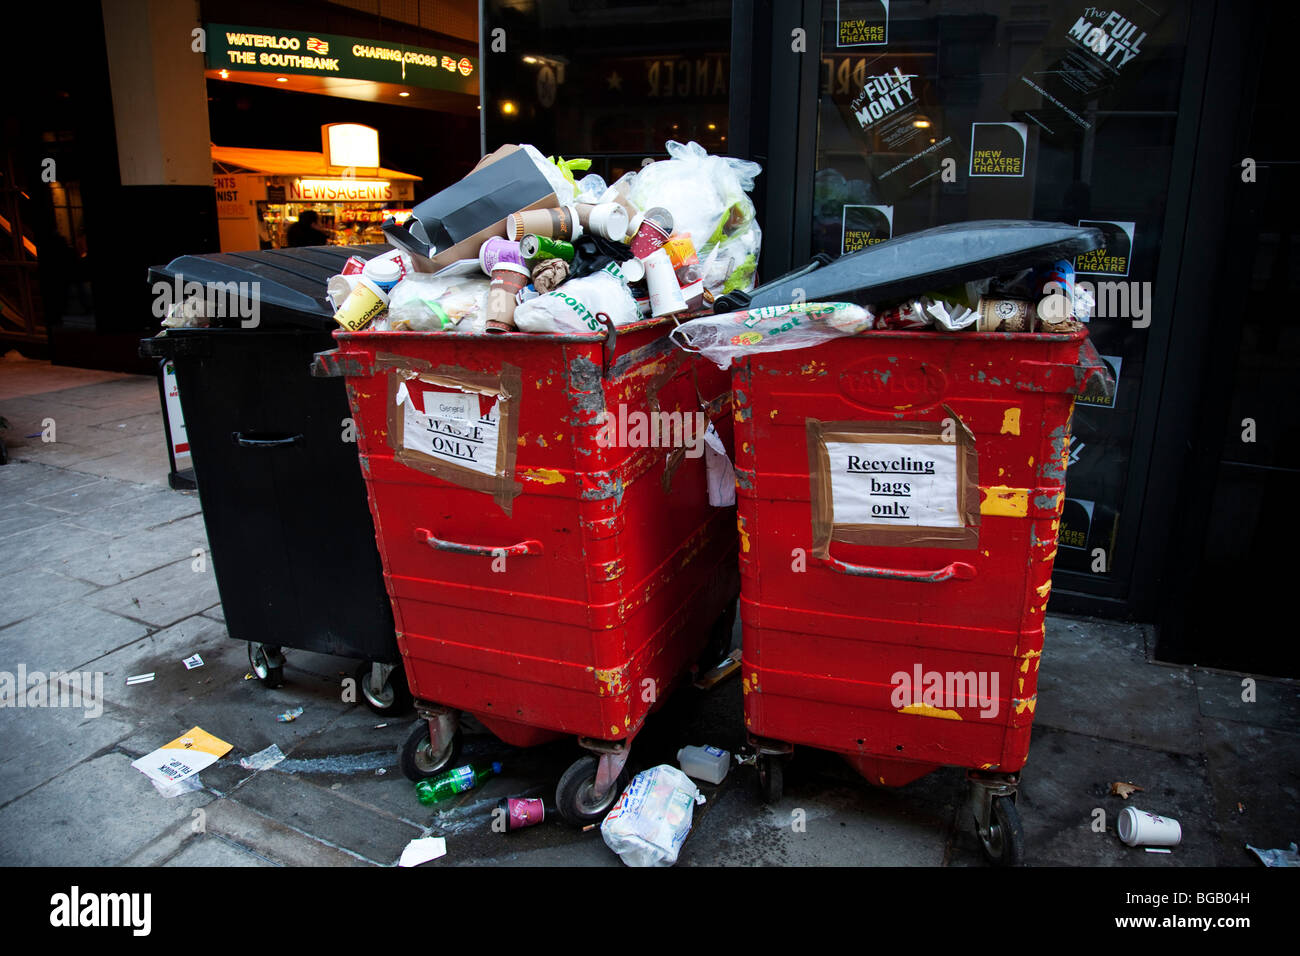 Recycling bins overflowing with rubbish. Designed  to recycle waste, these bins are now loaded with trash. Stock Photo